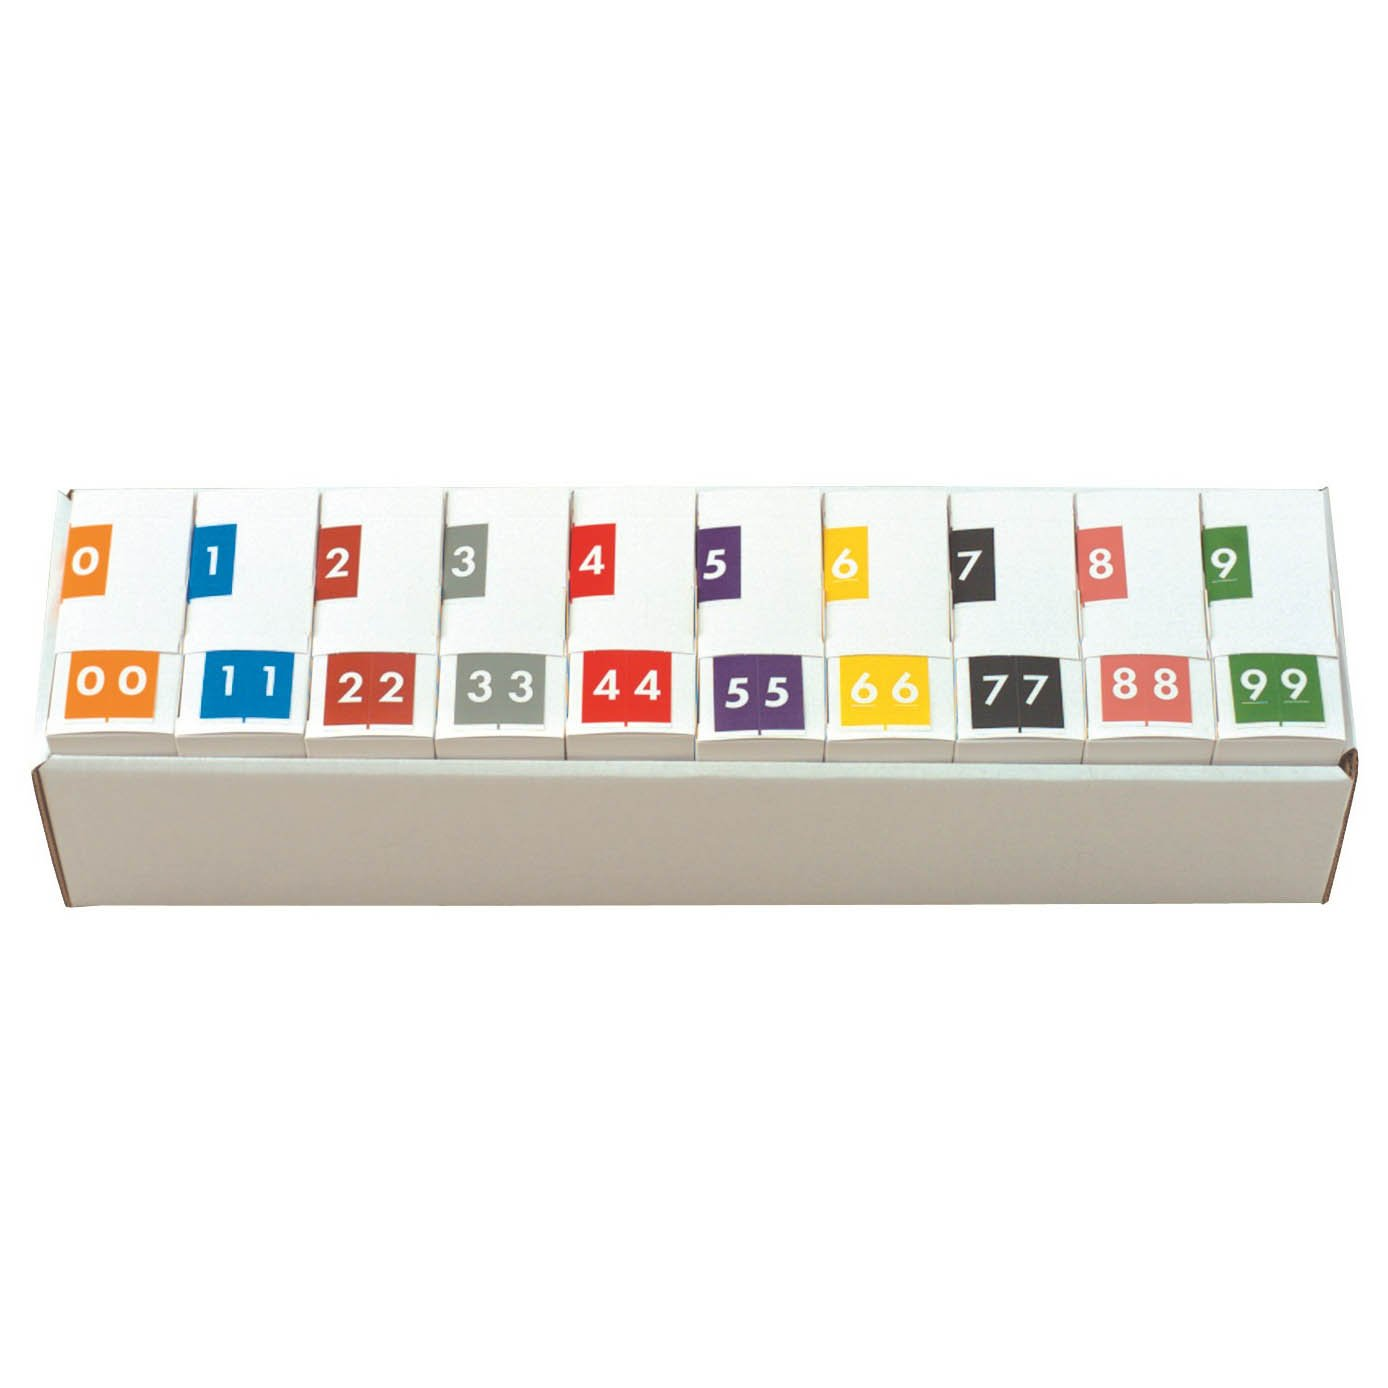 Barkley FNSFM Match SFNM Series Numeric Roll Labels - Set of Number 0 To 9